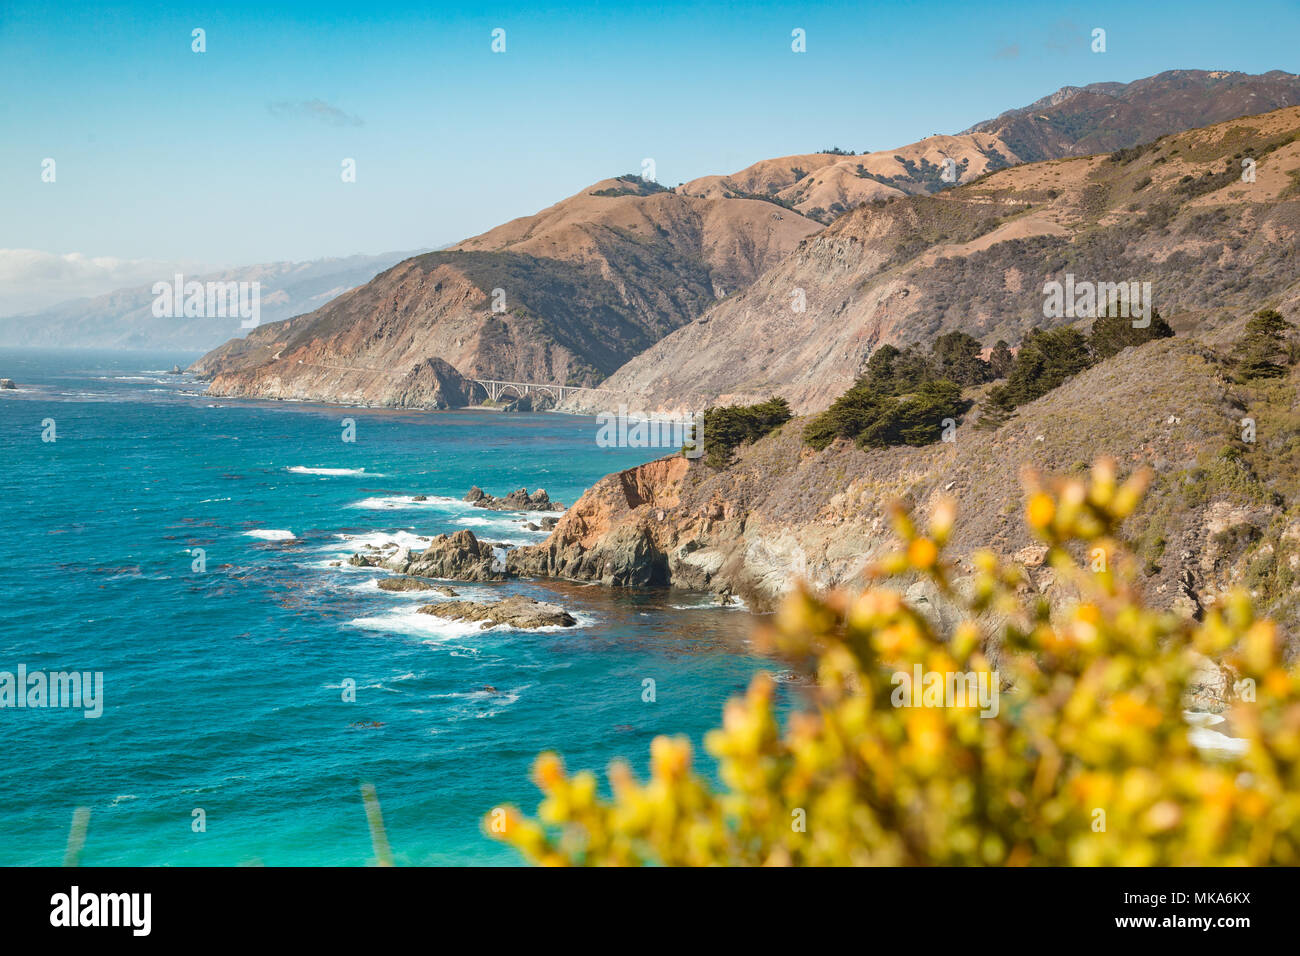 Scenic view of the rugged coastline of Big Sur with Santa Lucia Mountains and Big Creek Bridge along famous Highway 1 at sunset, California, USA - Stock Image